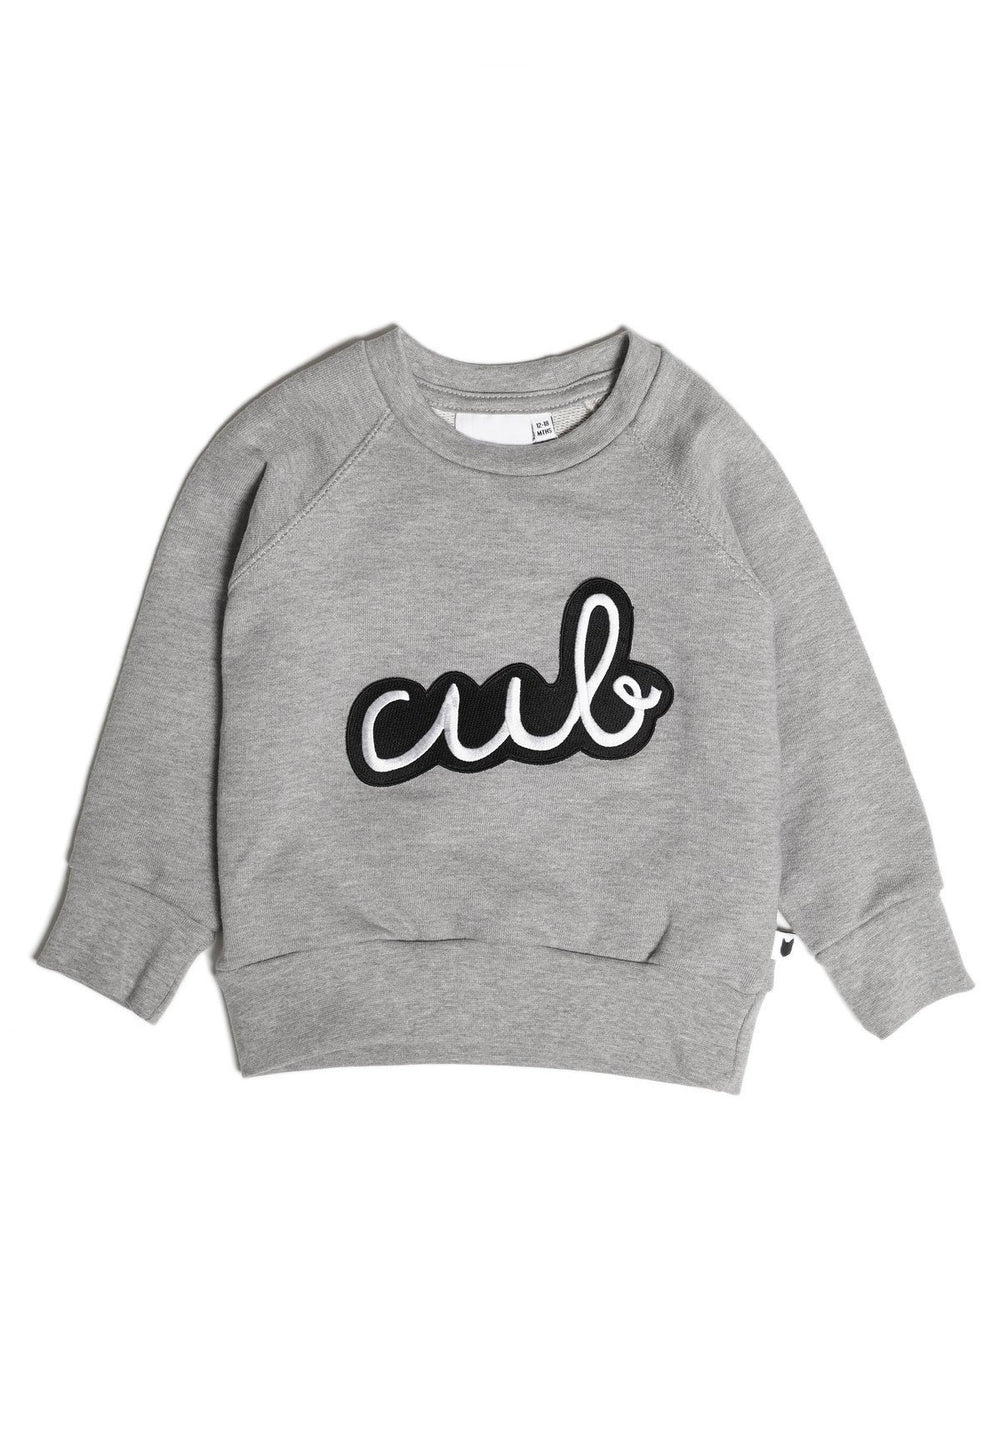 Tobias & The Bear - Icons Cub Badge Sweatshirt